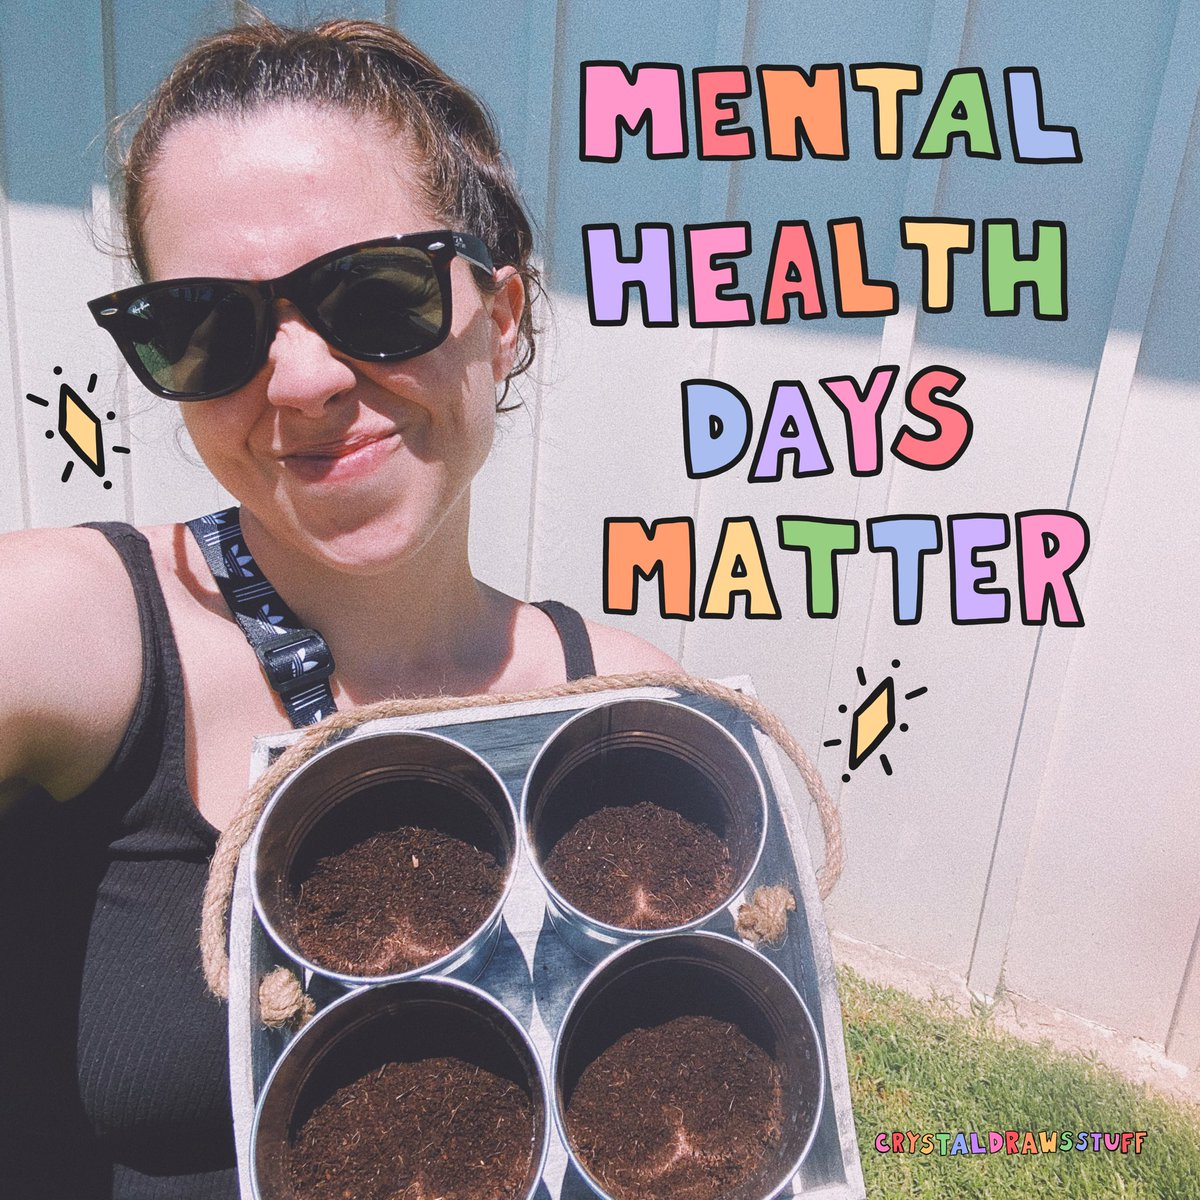 """Mental health days off should be mandatory for ALL. I remember all the times I quit jobs and called in """"sick"""" for school because of my mental health. I remember feeling like a failure or not """"normal"""" for needing more time than others. Everyone needs time and space. #Mentalhealth"""